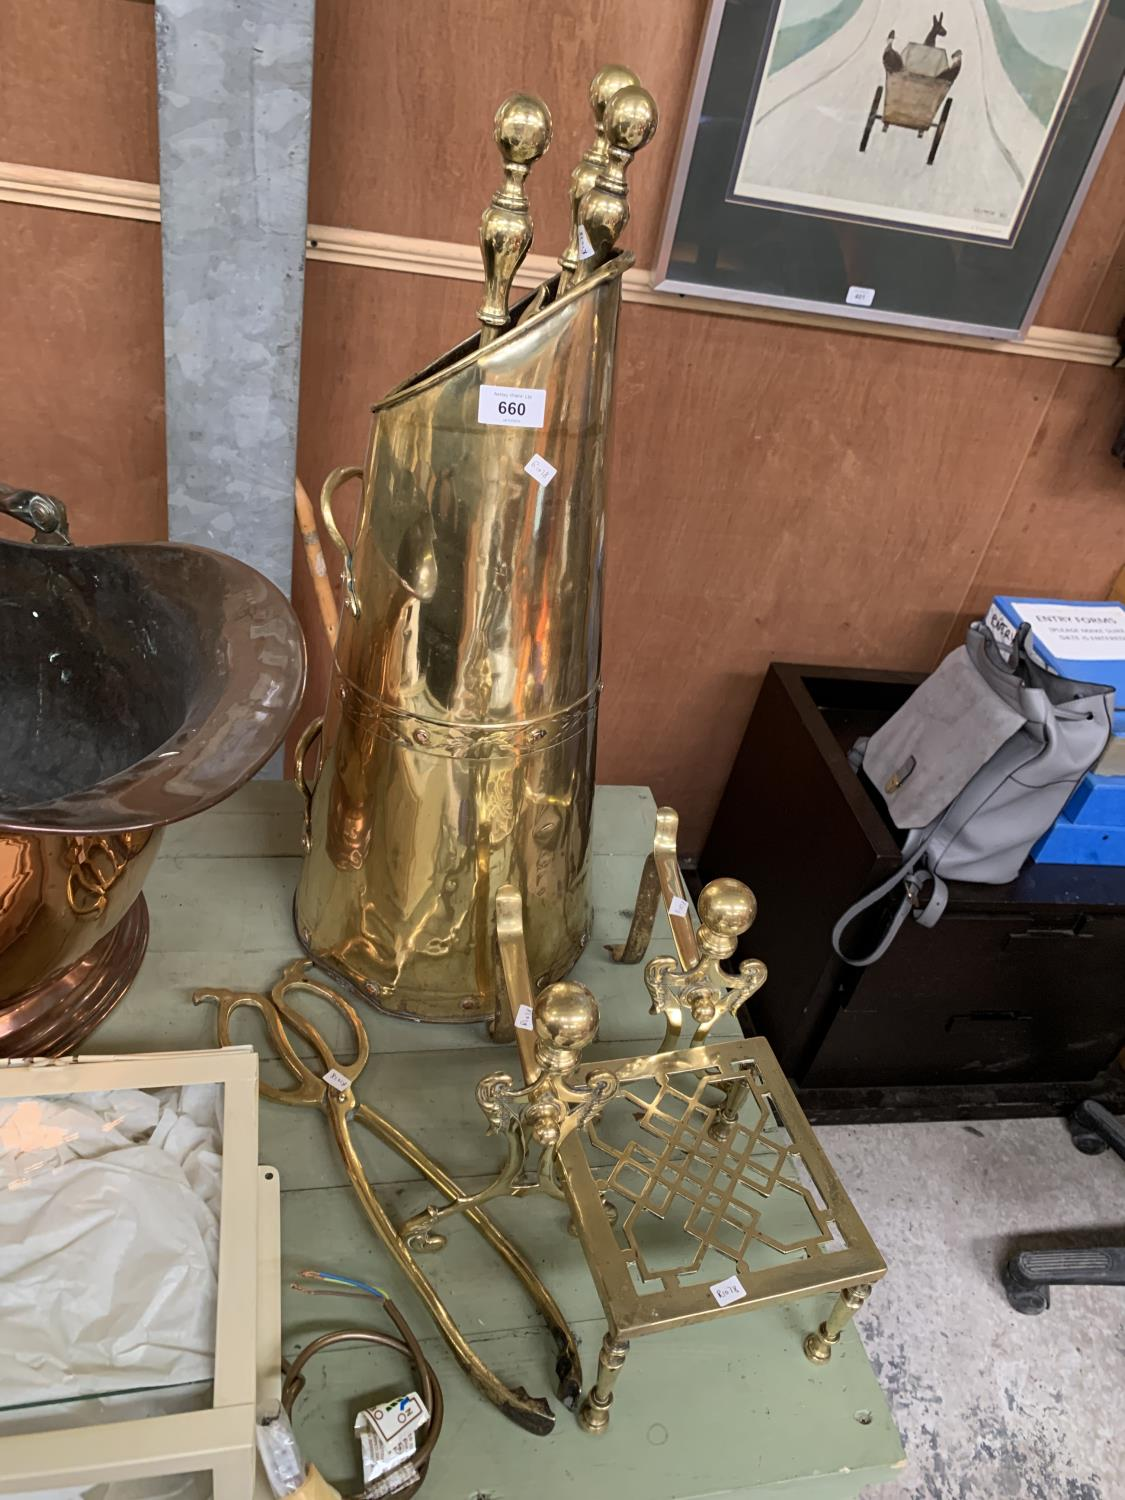 Lot 660 - A VINTAGE BRASS COMPANION SET, TRIVET STAND AND FIRE DOGS